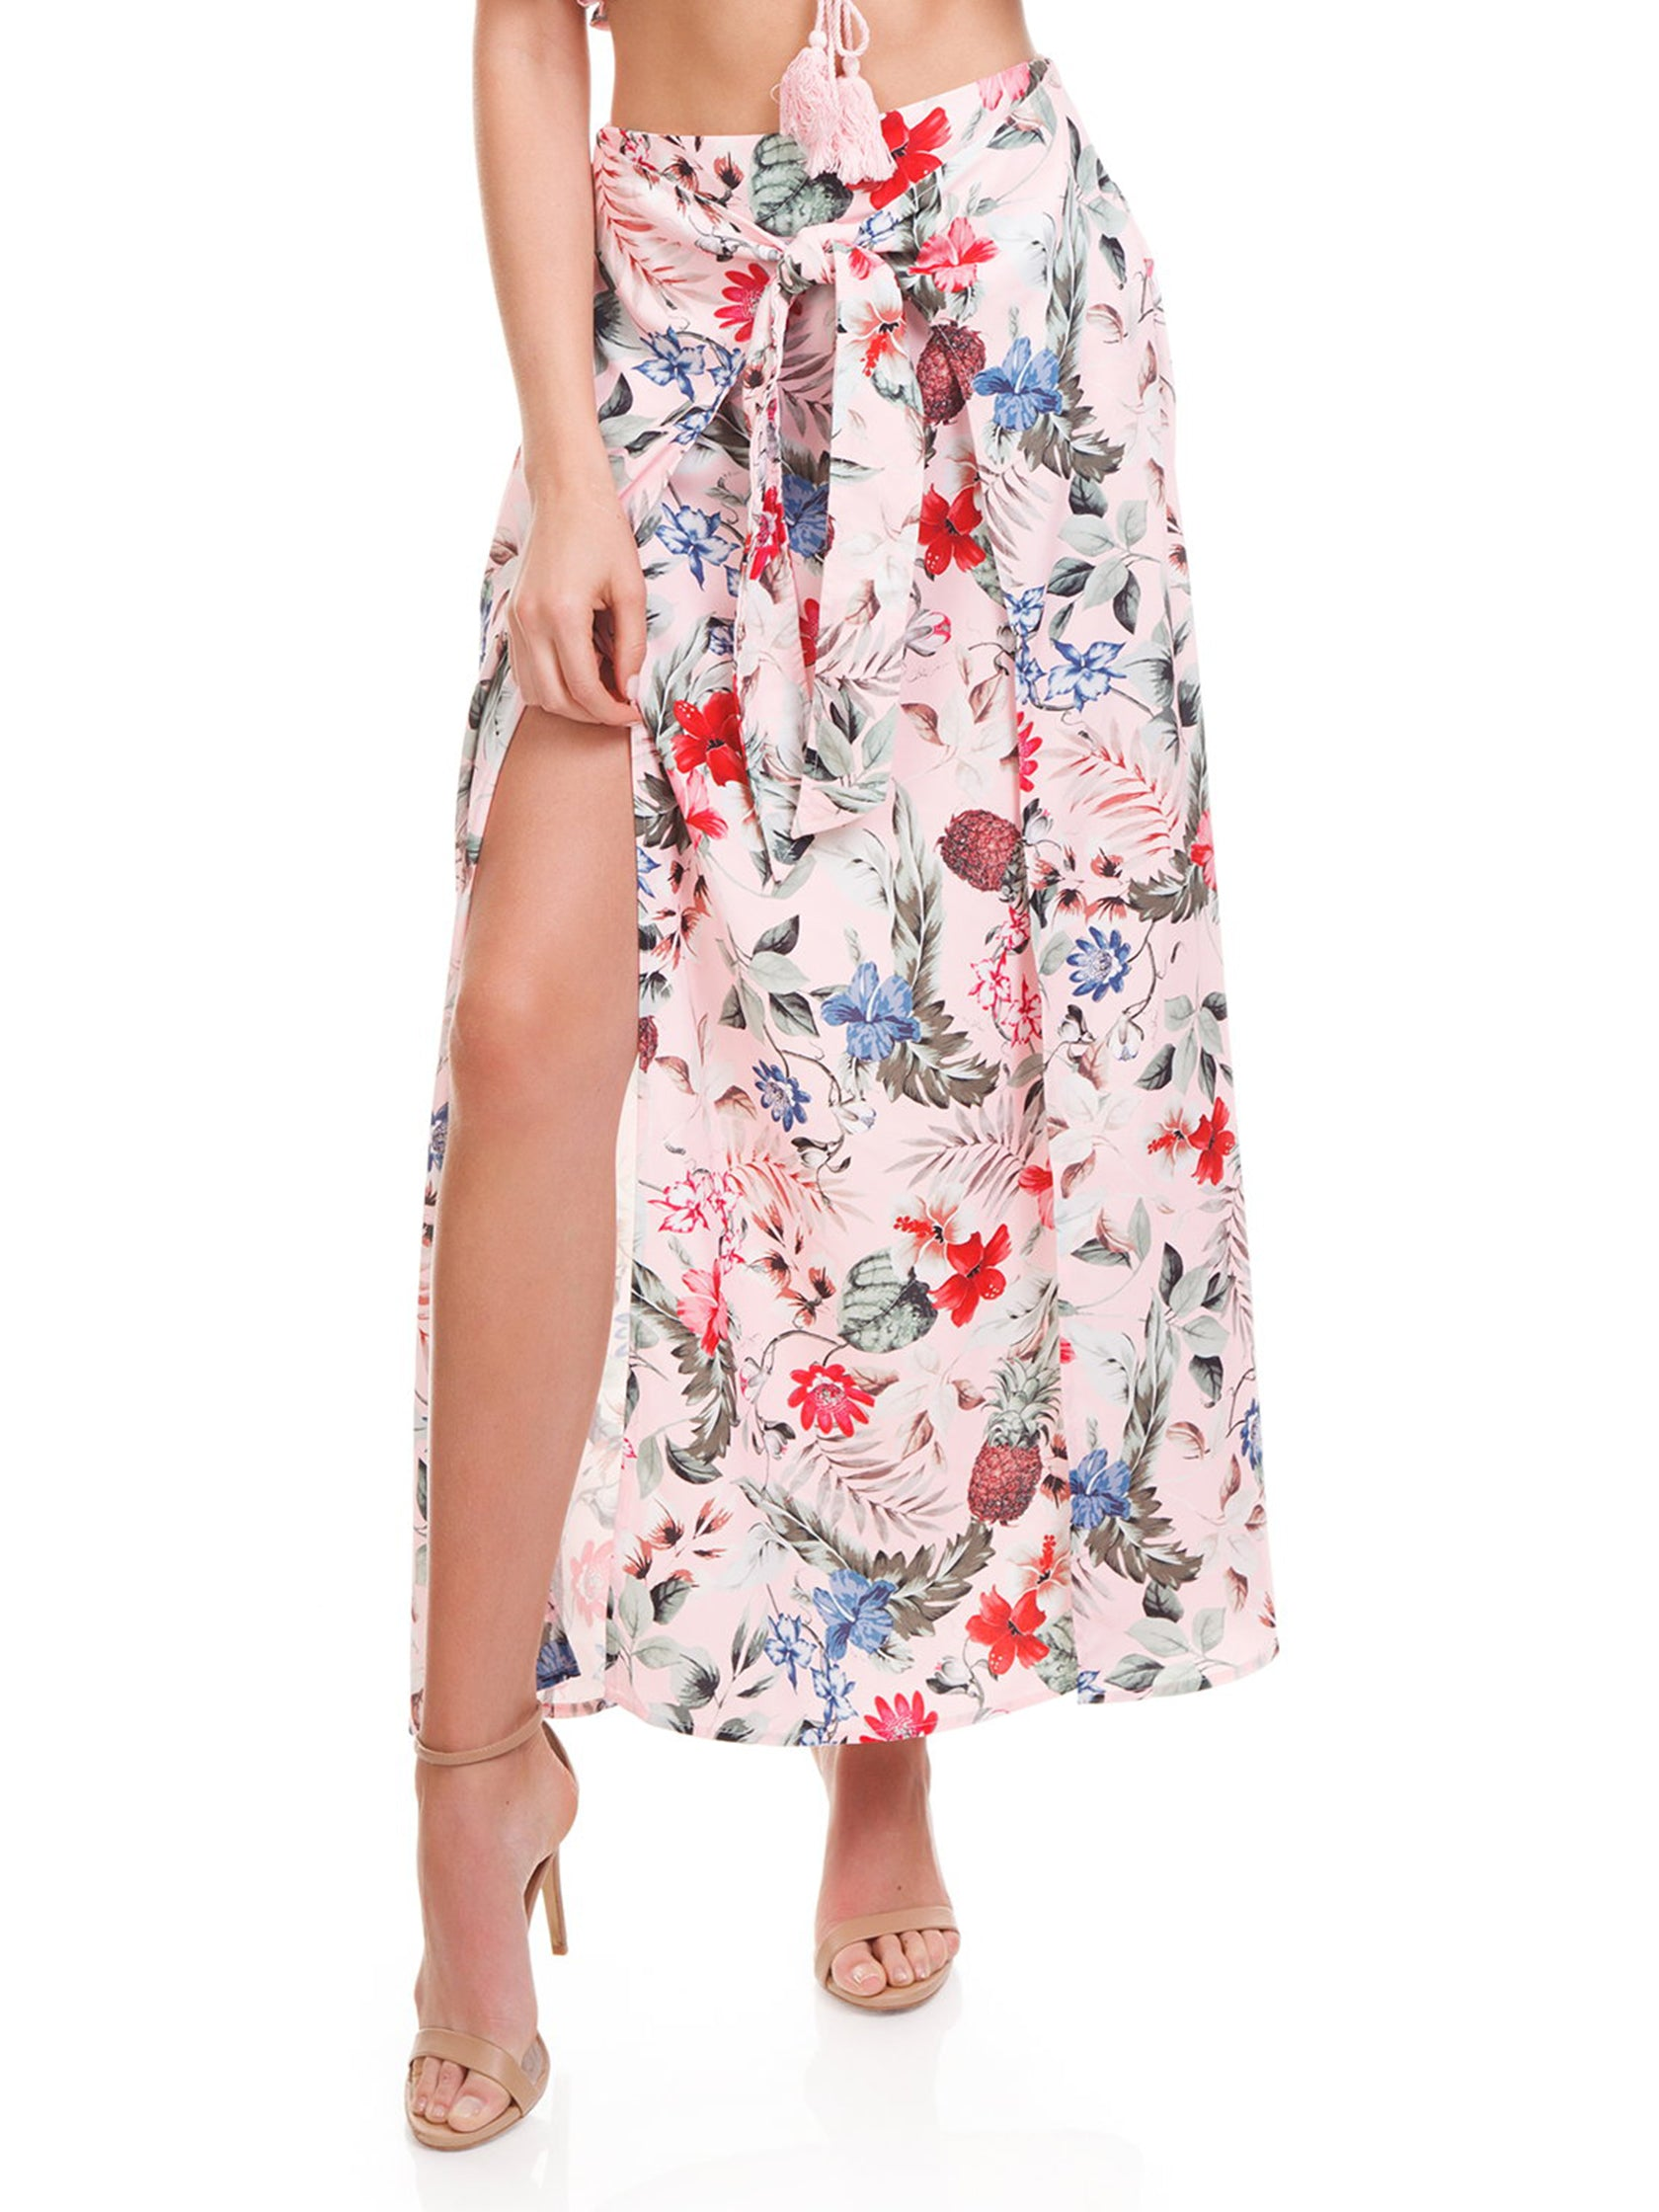 Woman wearing a skirt rental from MINKPINK called Aloha Maxi Skirt